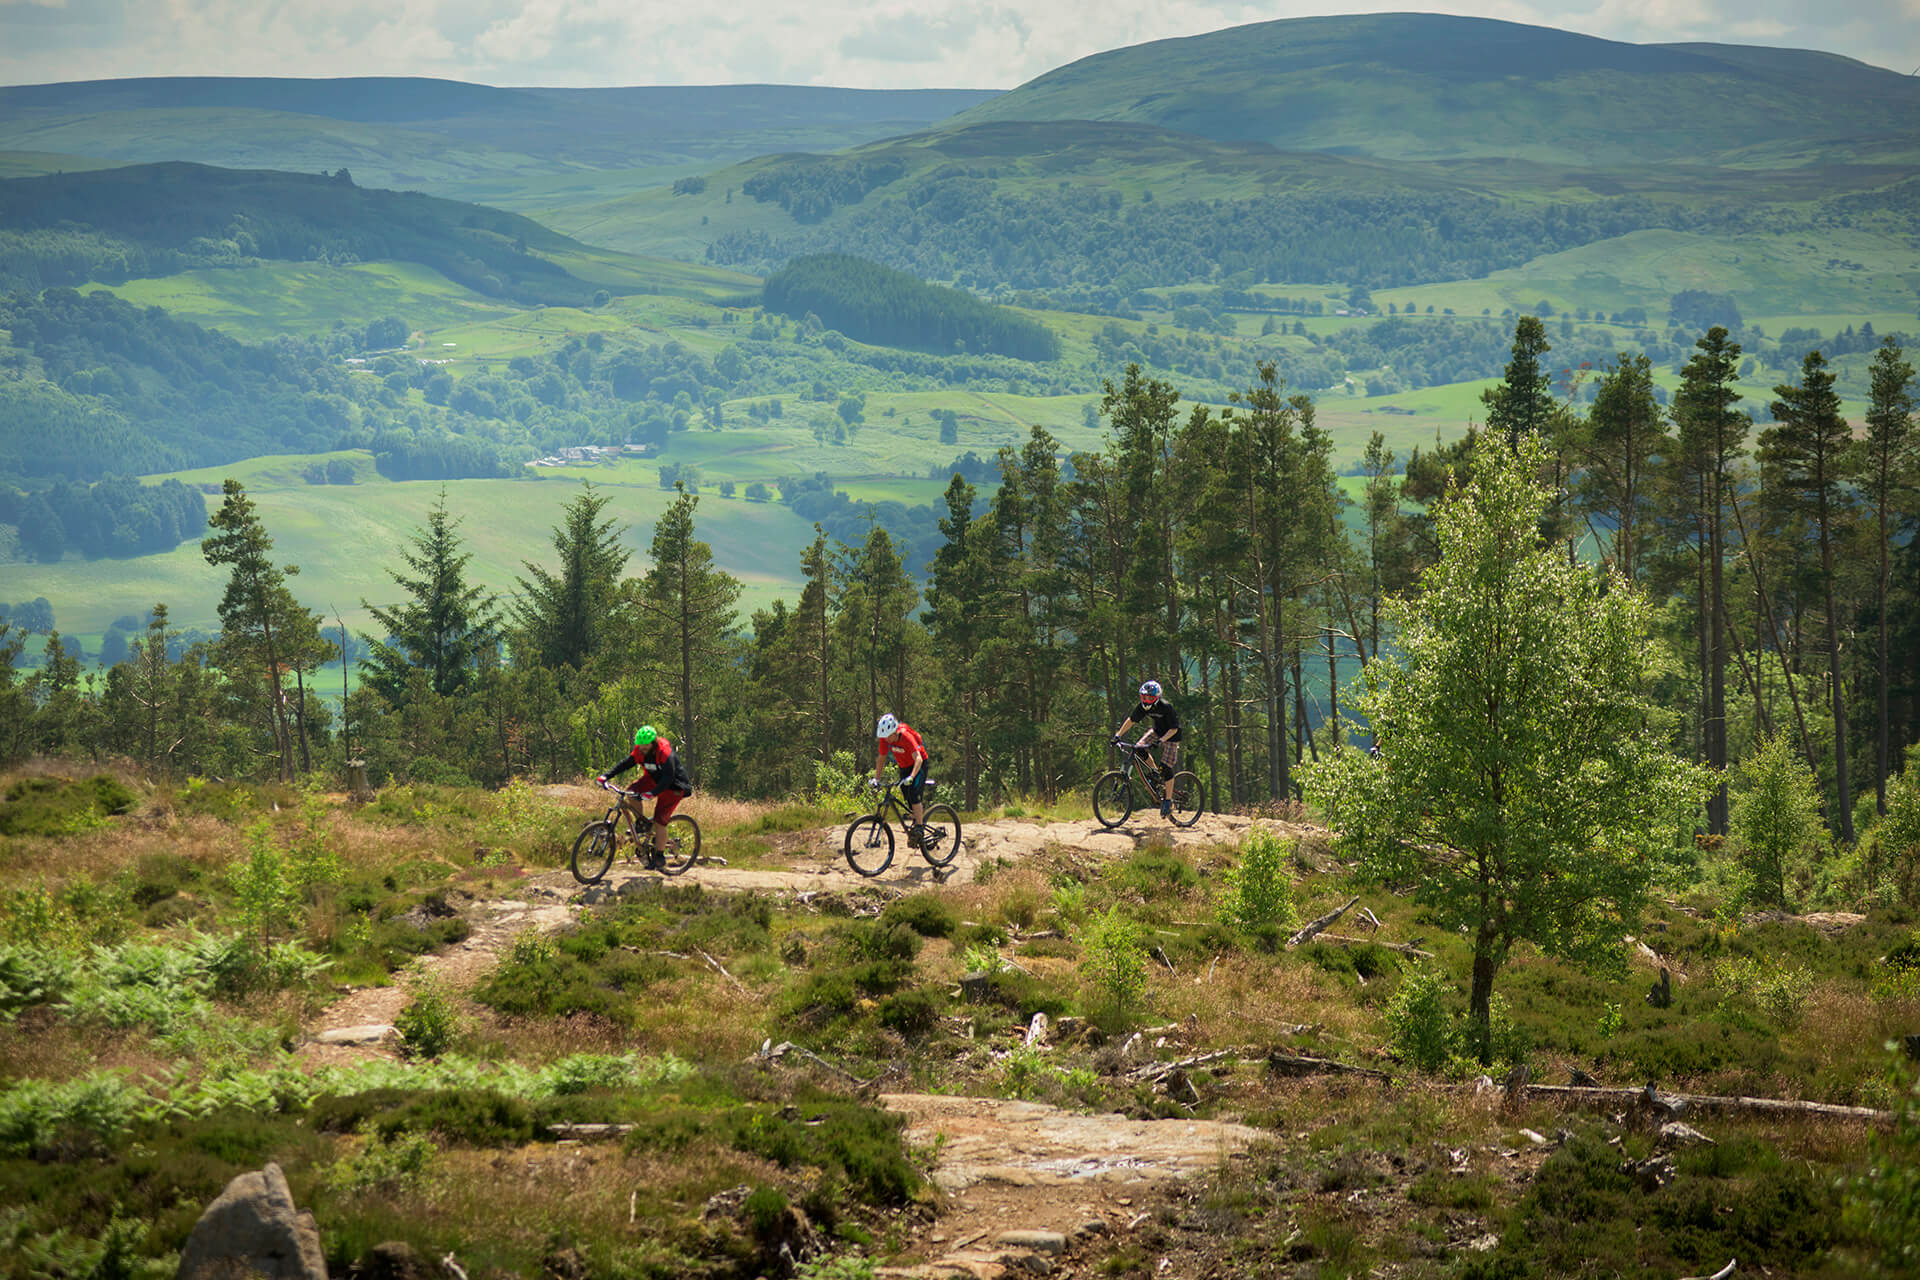 Two people mountain biking in the Perthshire Hills